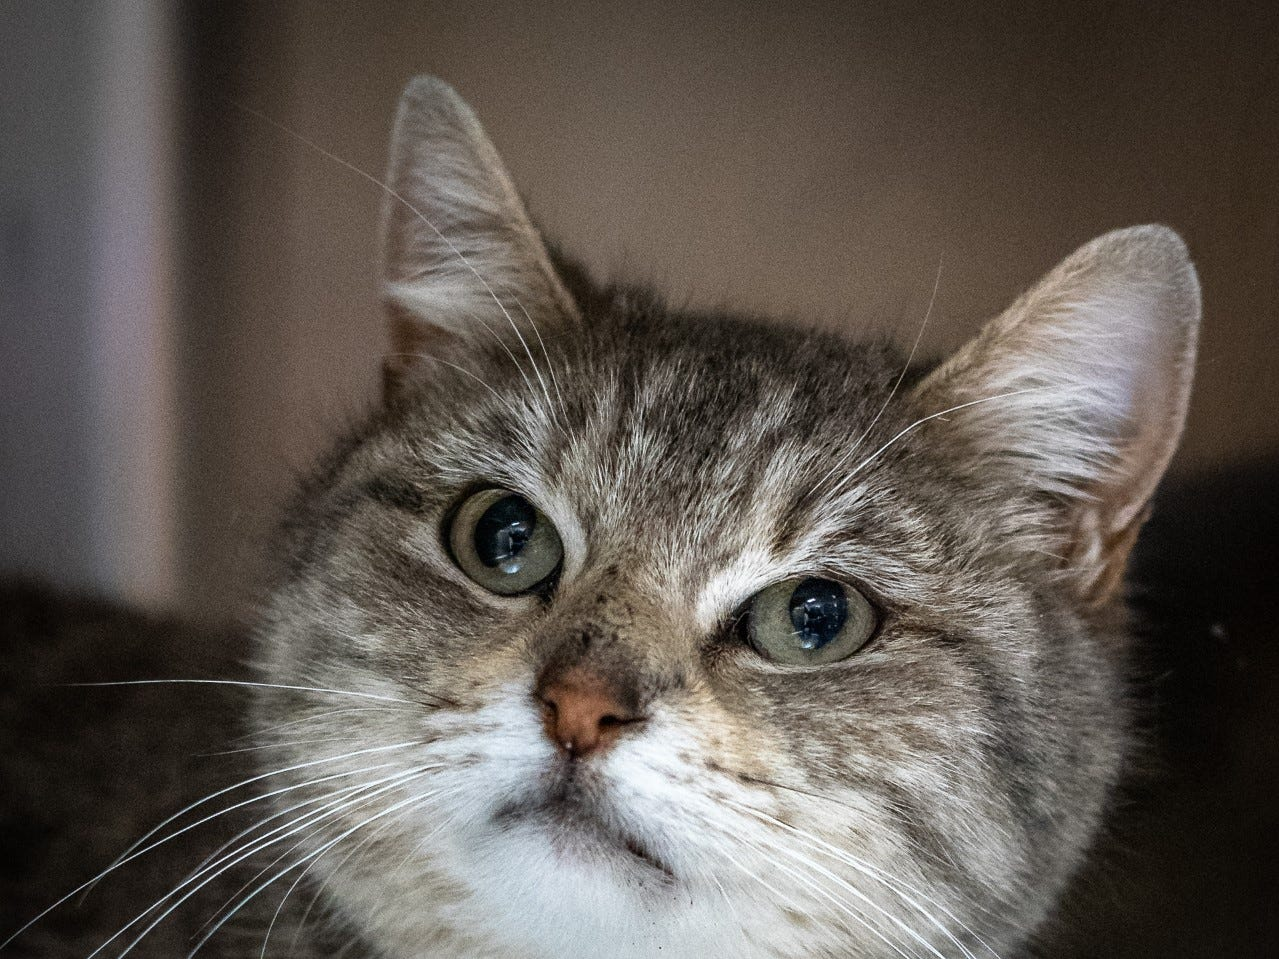 Tonks - Male domestic short hair, about 4 years old. Intake date:2/15/2019